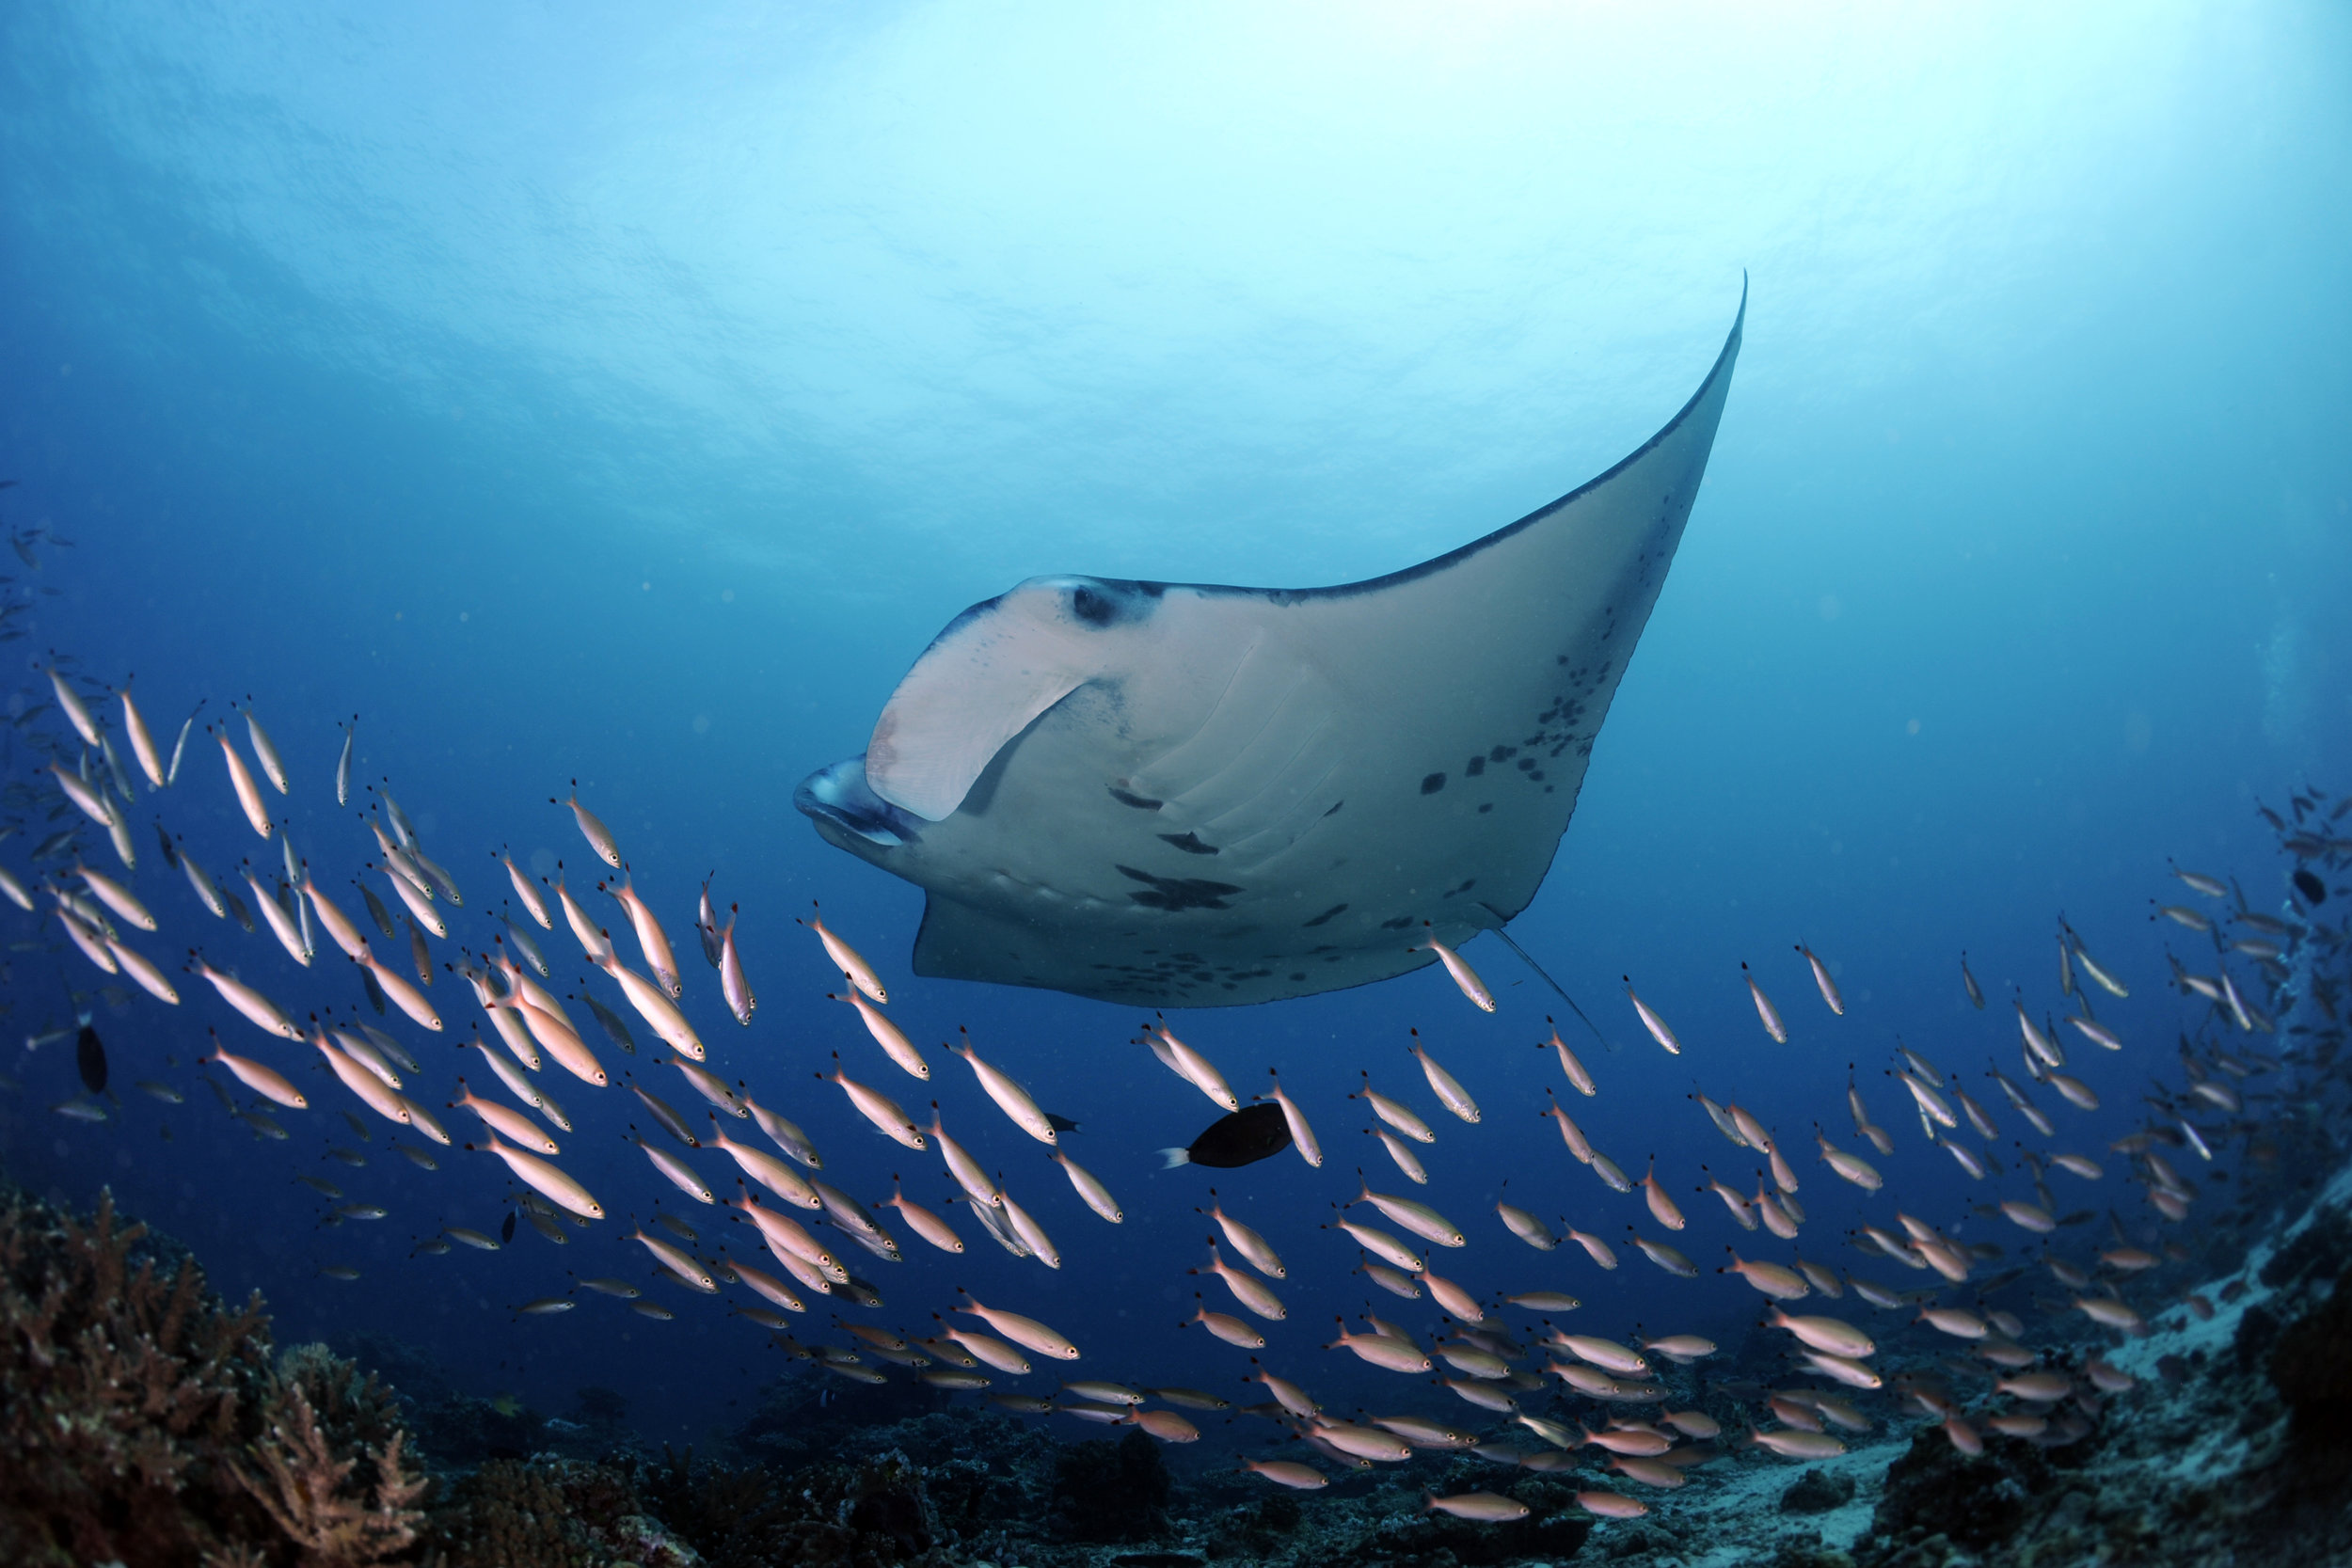 Manta flying through fish